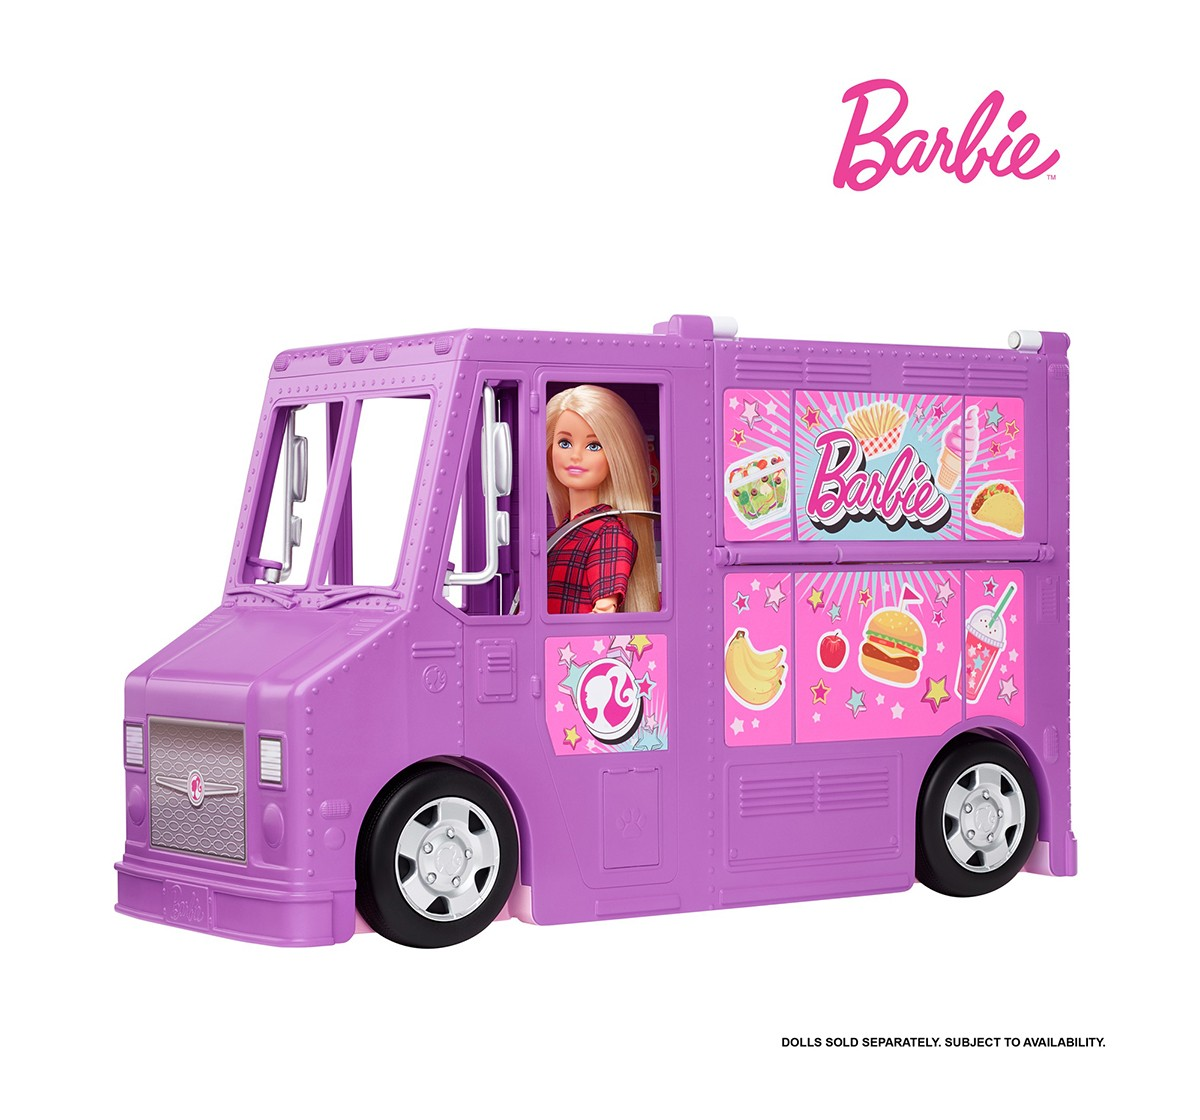 Barbie Food Truck Dolls & Accessories for Girls age 3Y+